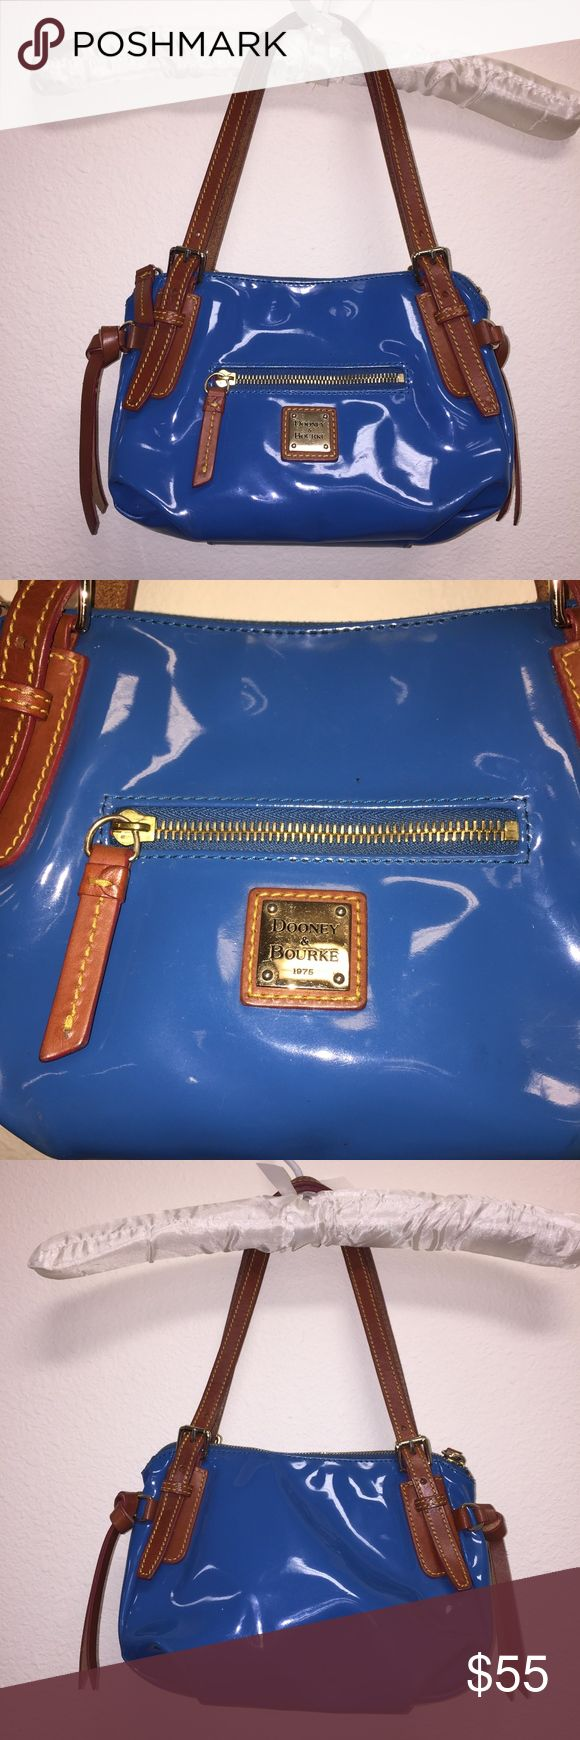 """Dooney & Bourke Electric Blue Shoulder Bag In excellent condition, very minimal blemishes if any. Bright blue with brown and gold accents and red lining. 9 1/2"""" wide, 7"""" high. Strap drop: 8''.Feel free to ask any questions, no trades/model photos. Offers thru offer button only! Items ship same day M-F if purchased before 2 pm PST! Dooney & Bourke Bags Shoulder Bags"""